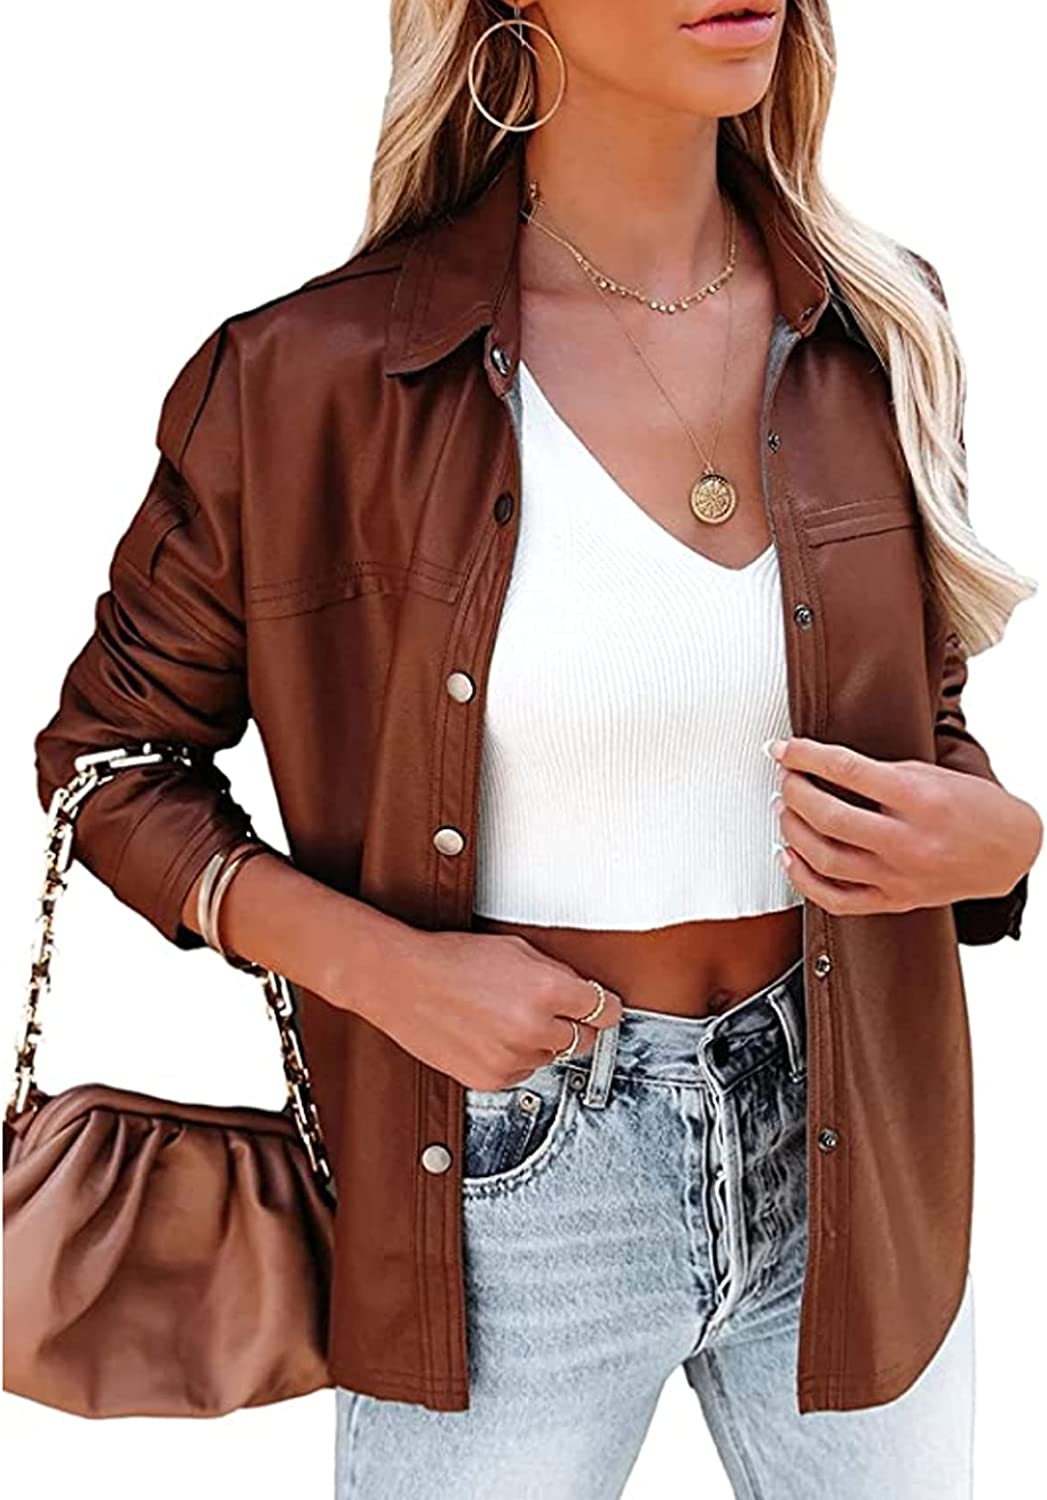 CXINS Womens PU Leather Jacket Lapel Collar Buttons Down Long Sleeve Loose Casual Faux Suede Blazer Coat Shacket